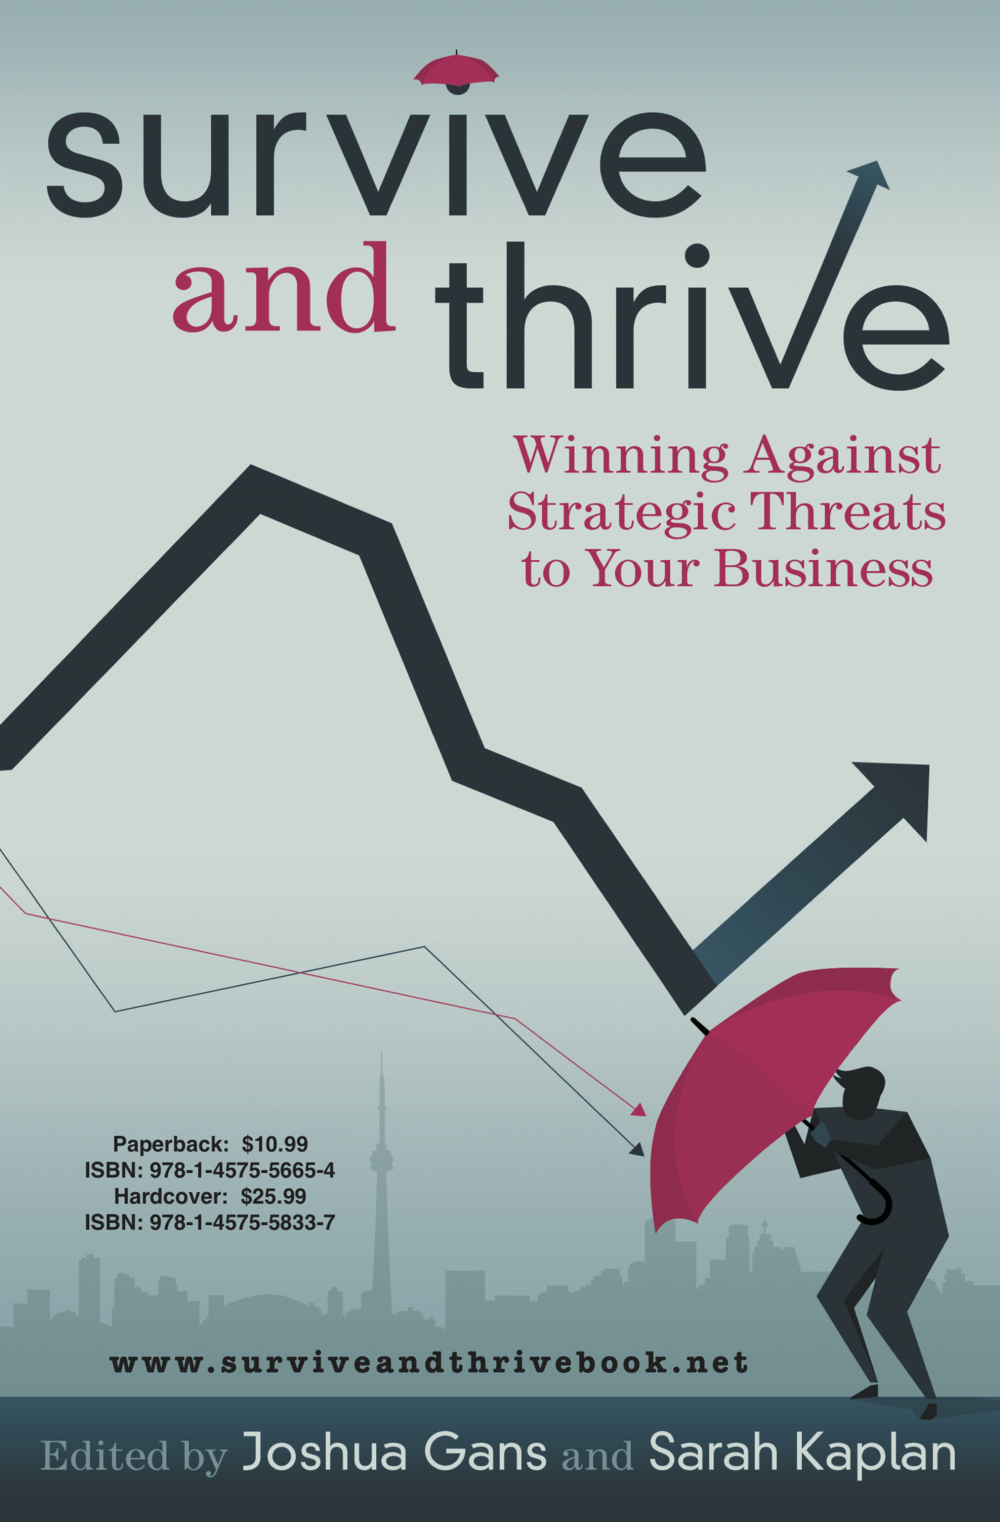 Survive and Thrive - Published in 2017, this is a collection of essays by Rotman School strategy faculty. They examine whether businesses face existential threats and what to do about them.